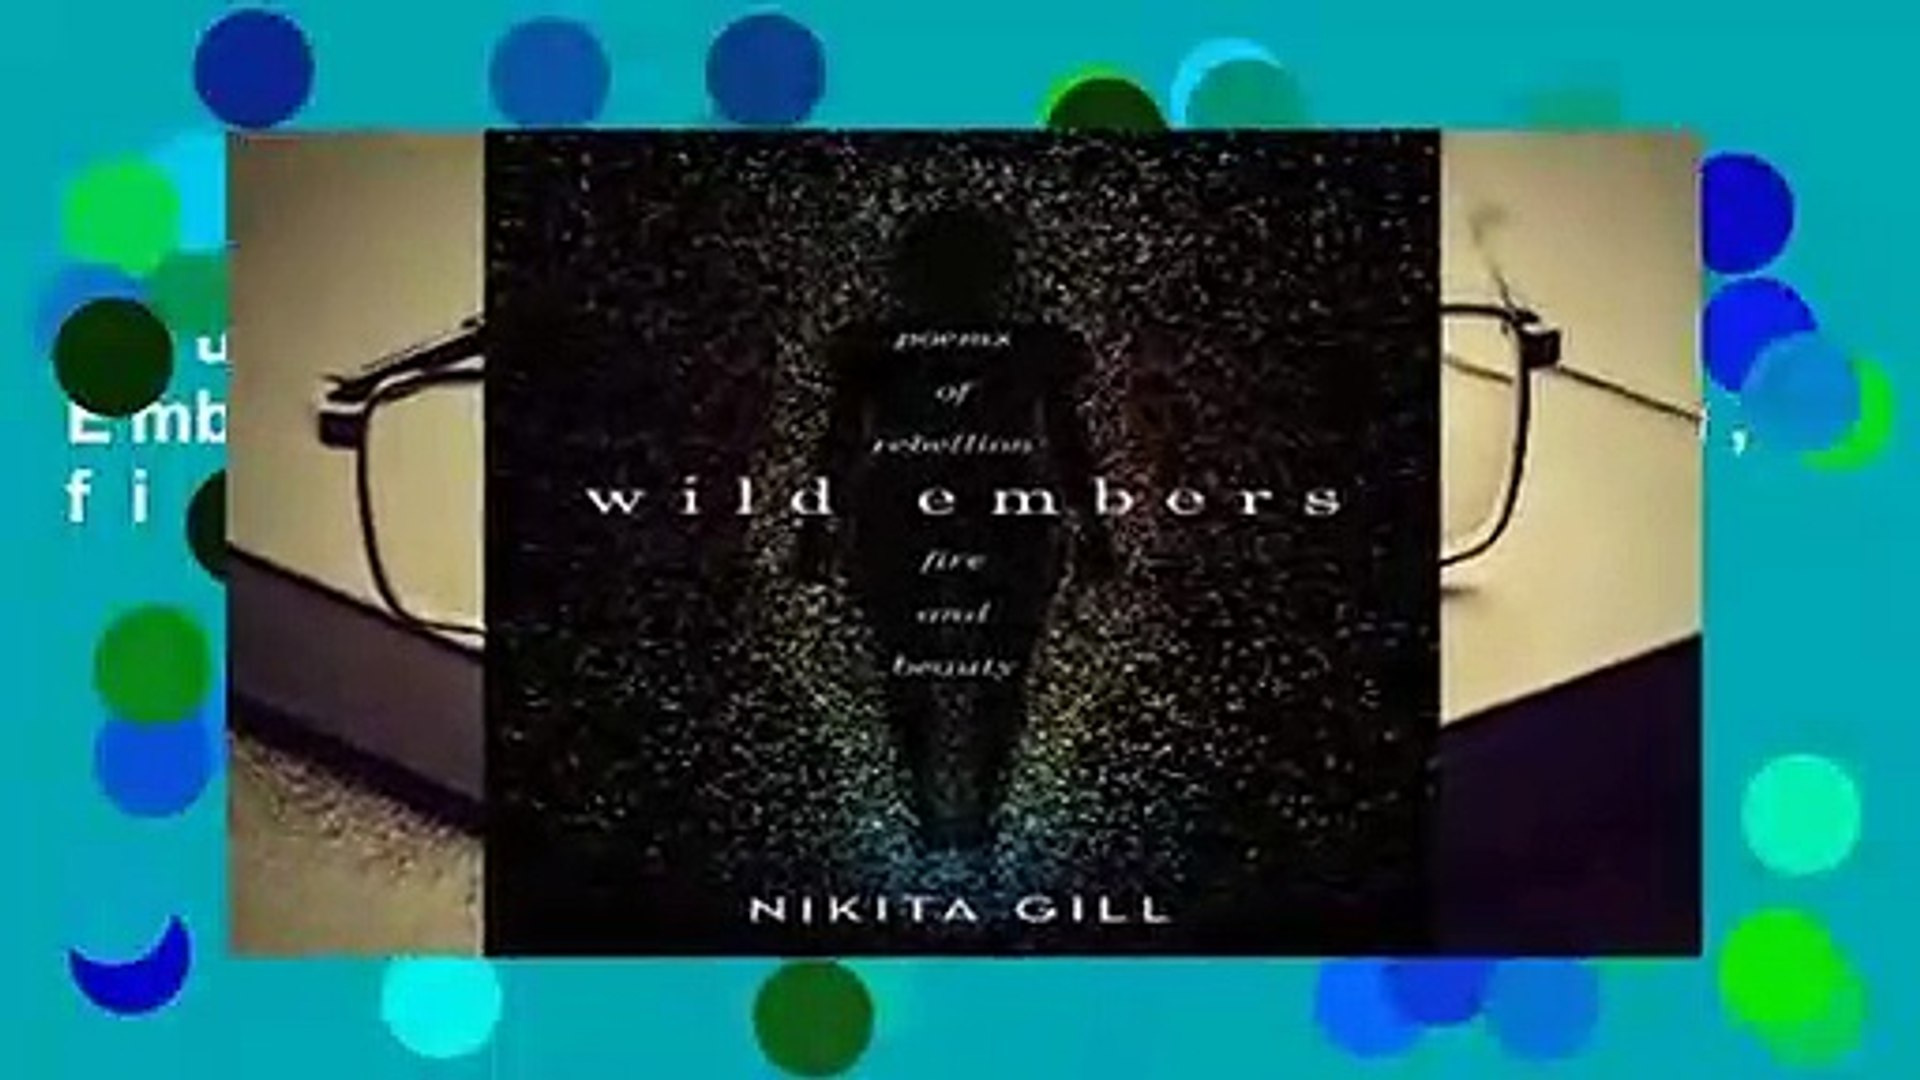 Full E-book  Wild Embers: Poems of rebellion, fire and beauty Complete